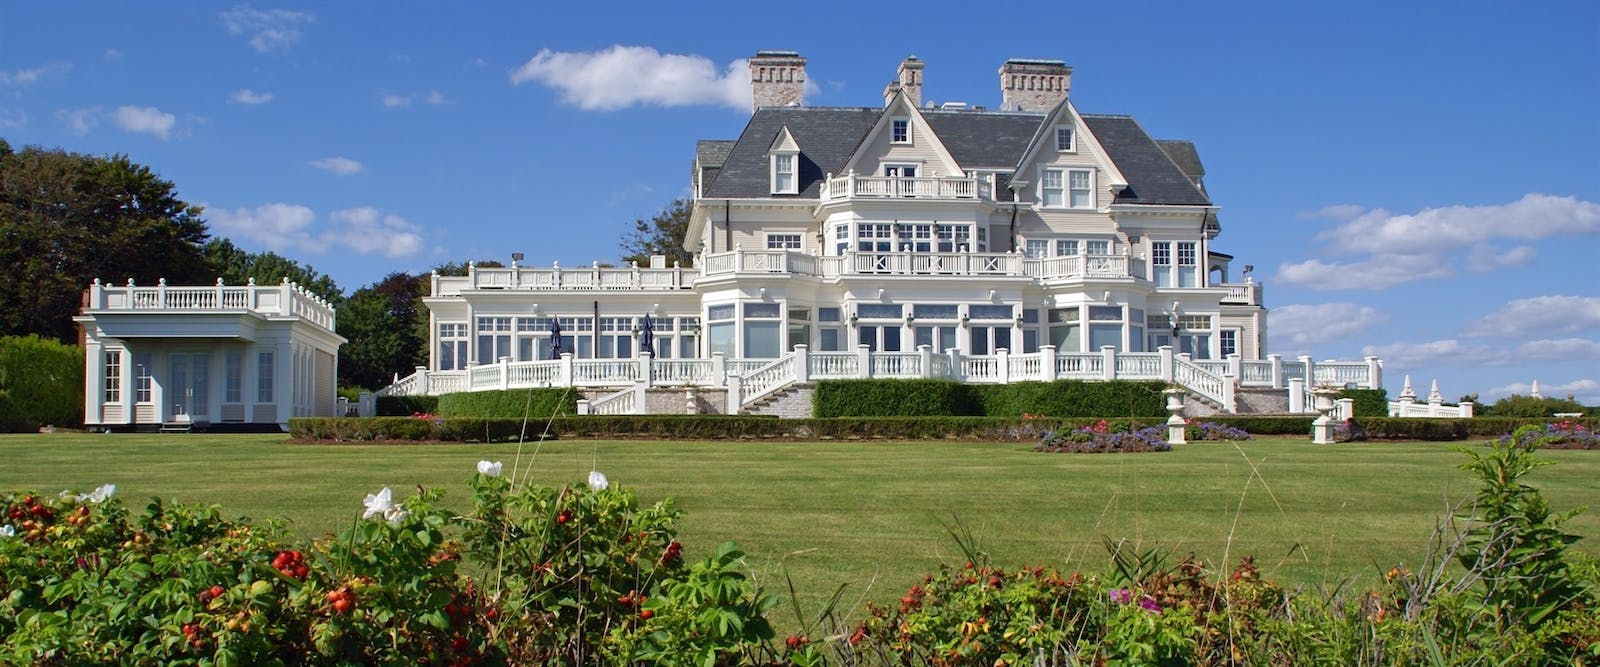 newport mansion